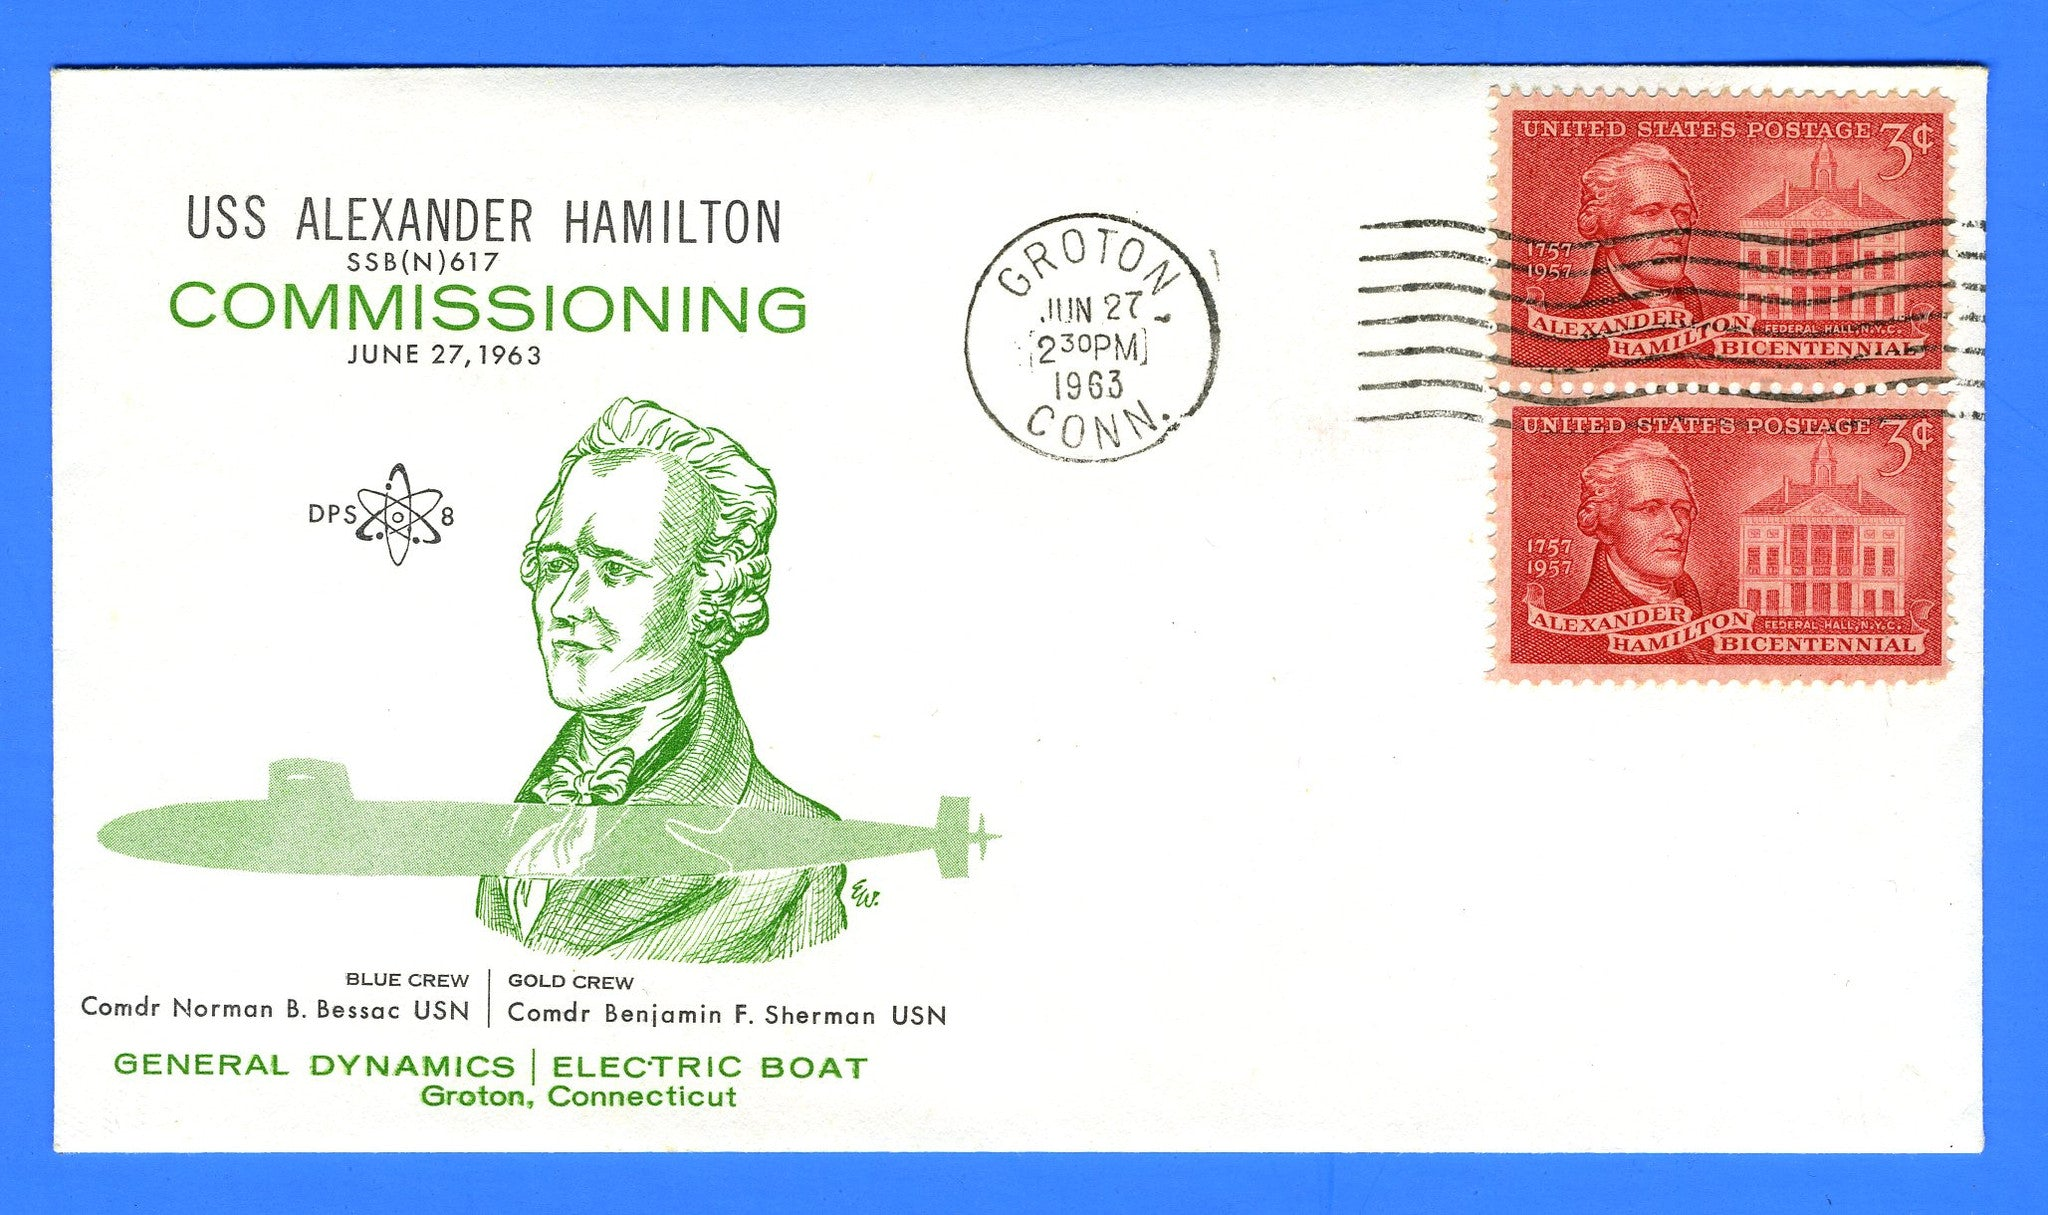 USS Alexander Hamilton SSBN-617 Commissioned June 27, 1963 - Cachet by DPS No. 8 (Dynamic Philatelic Society)